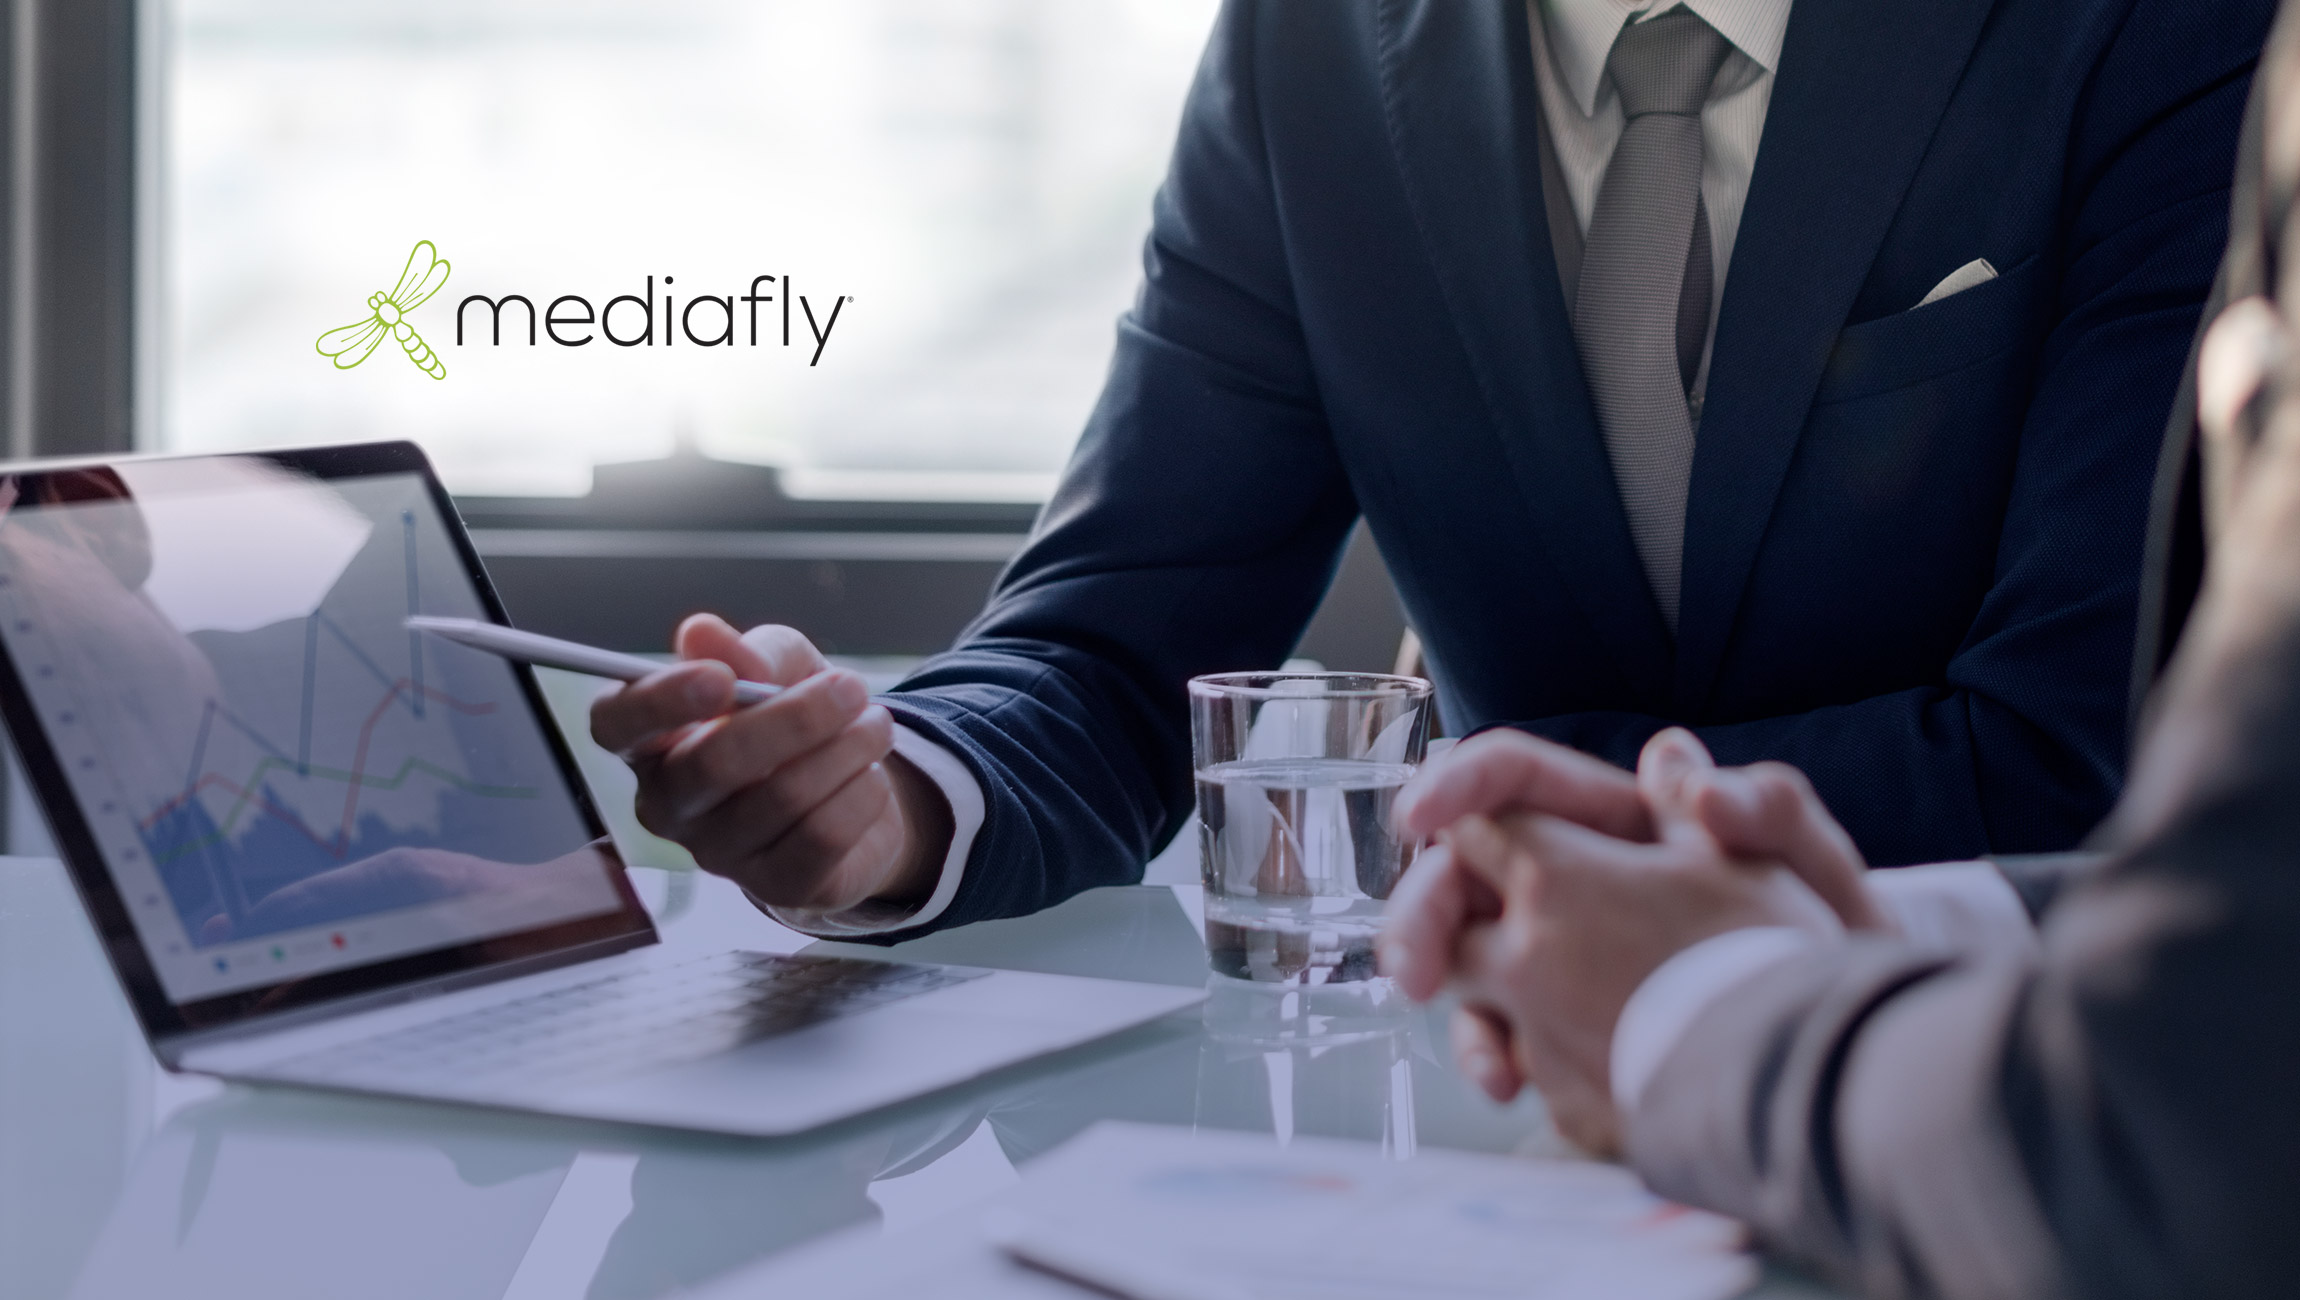 Mediafly Named A Strong Performer in Sales Content Solutions Evaluation by Independent Research Firm